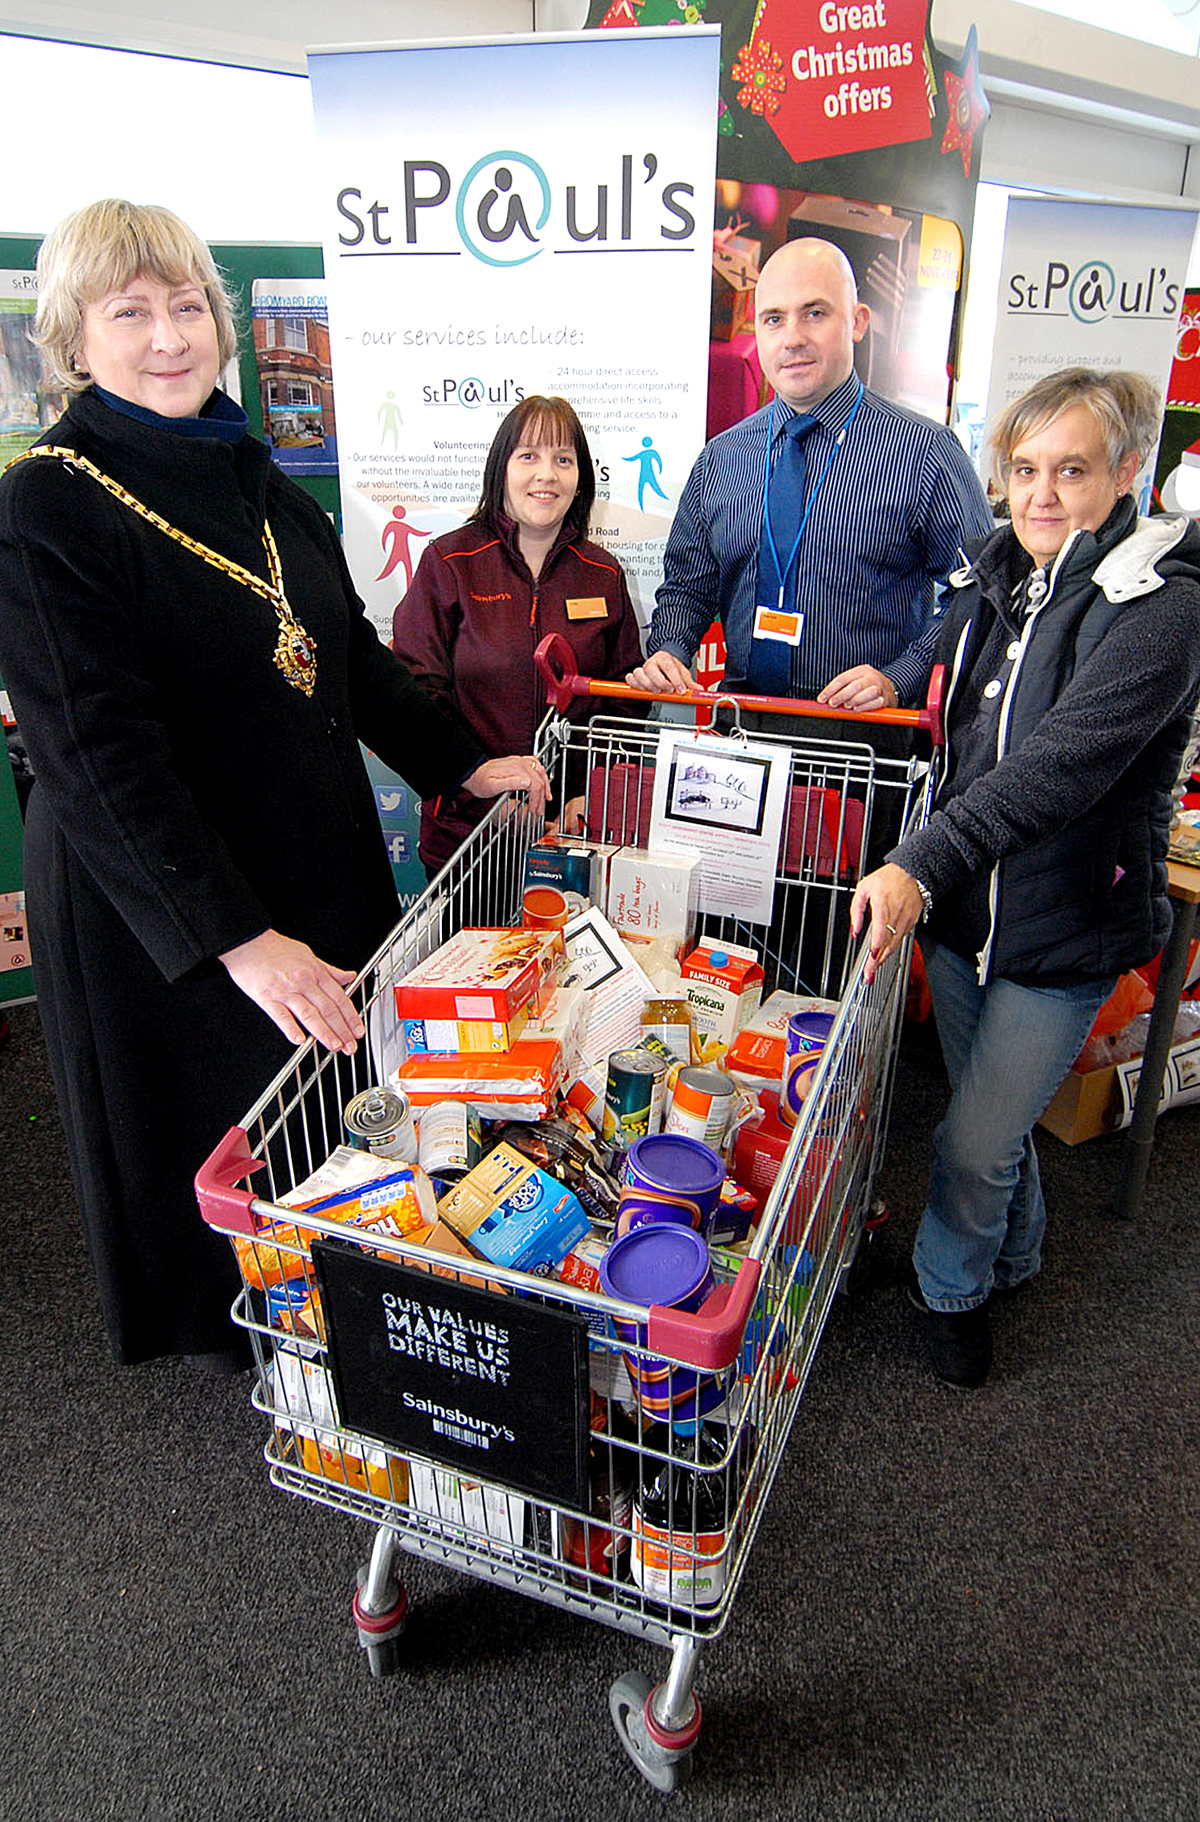 KINDNESS: From left, Pat Agar, Louise Shaw, Darren Bodycote, both of Sainsbury's, and Lisa Richards of St Paul's. BUY: worcesternews.co.uk/pictures/sales. 4713459101